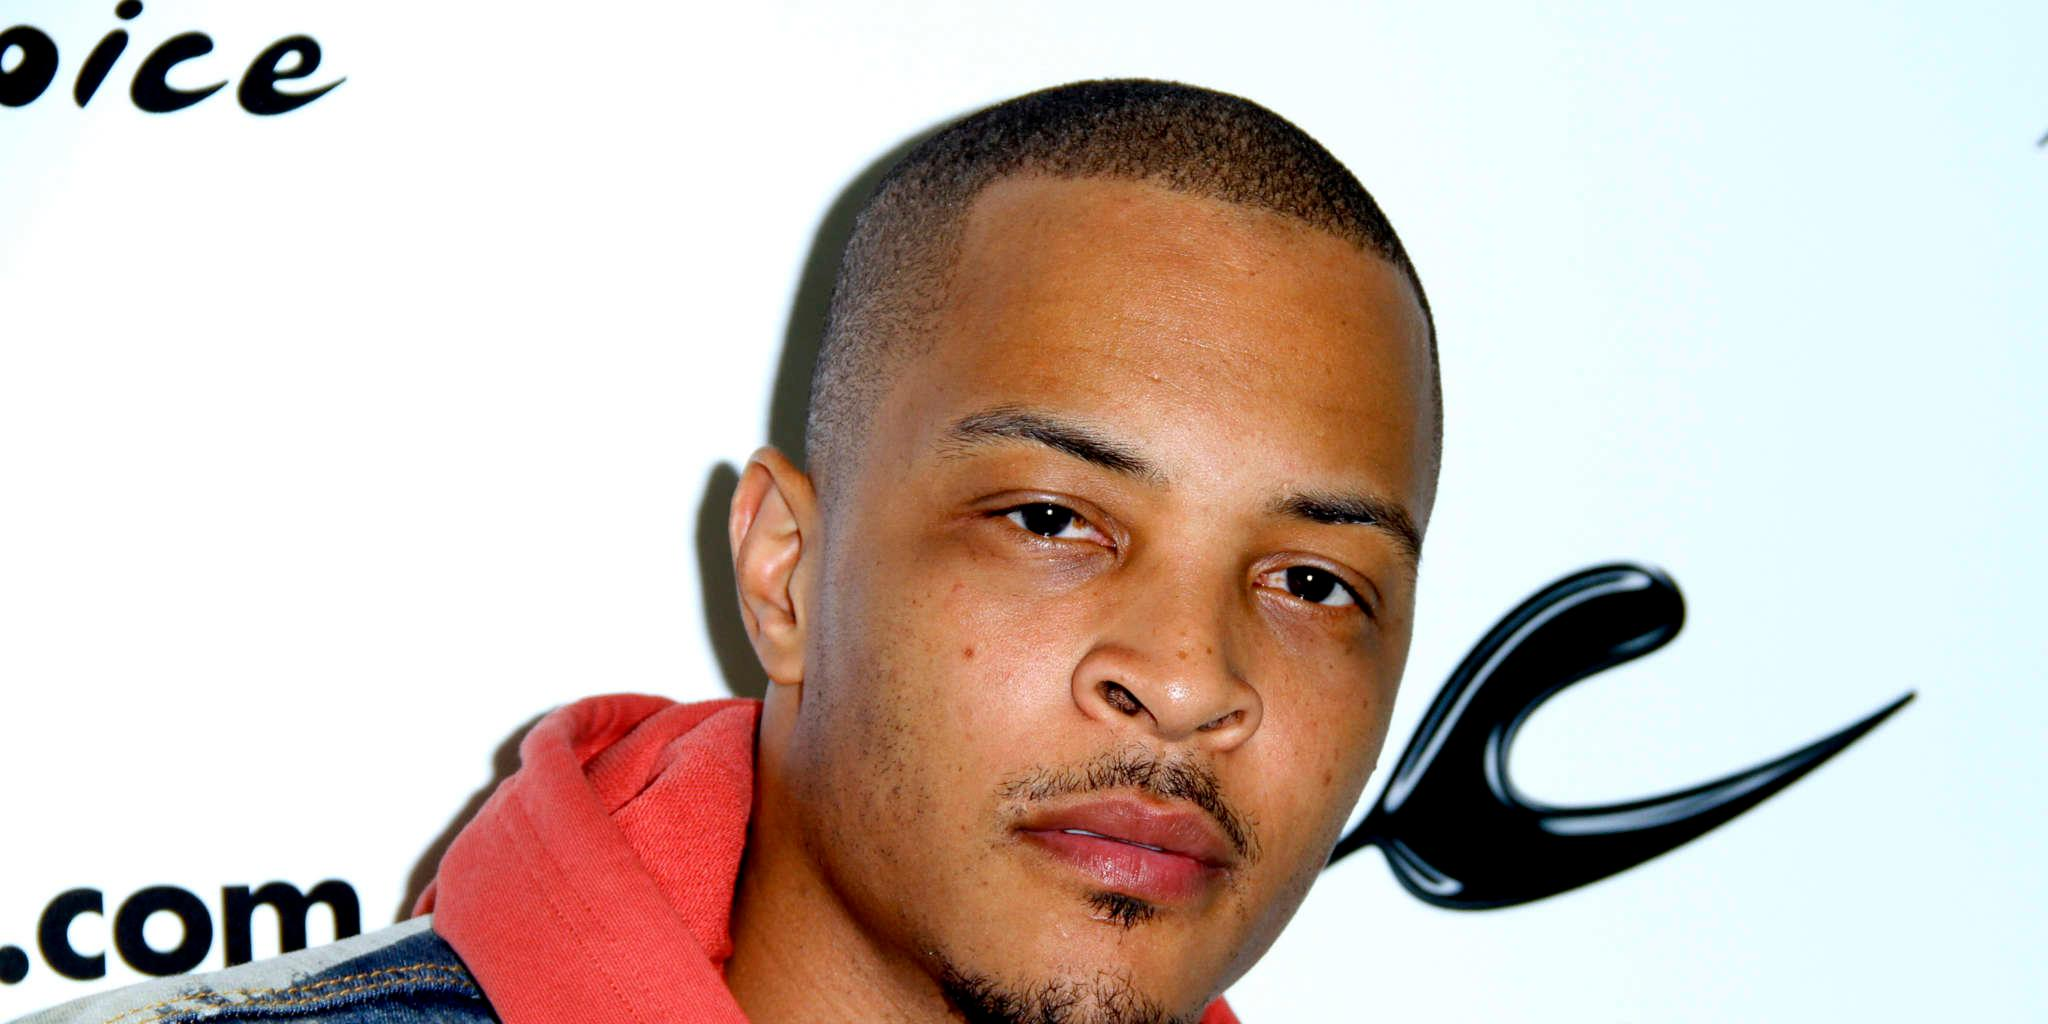 T.I. Shocks His Fans With A Video Featuring The Police: 'Racist, Hateful, Disrespectful Cowards!'